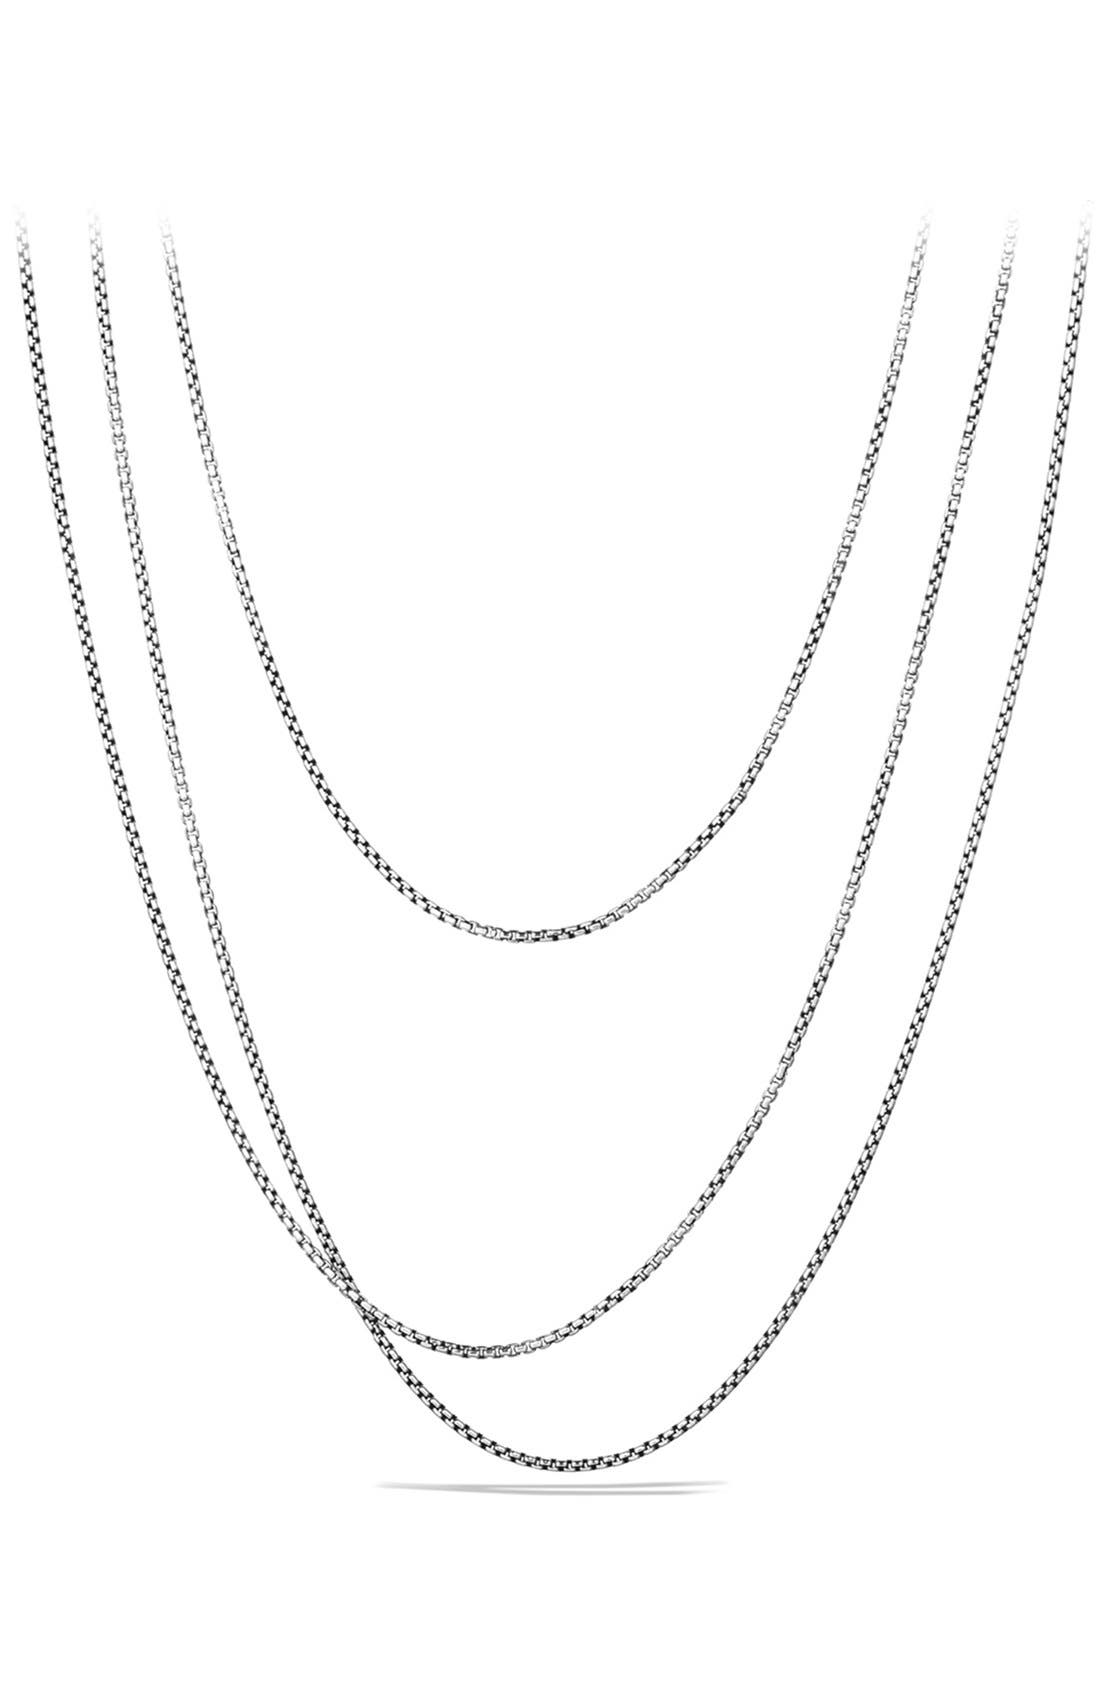 DAVID YURMAN Small Box Chain